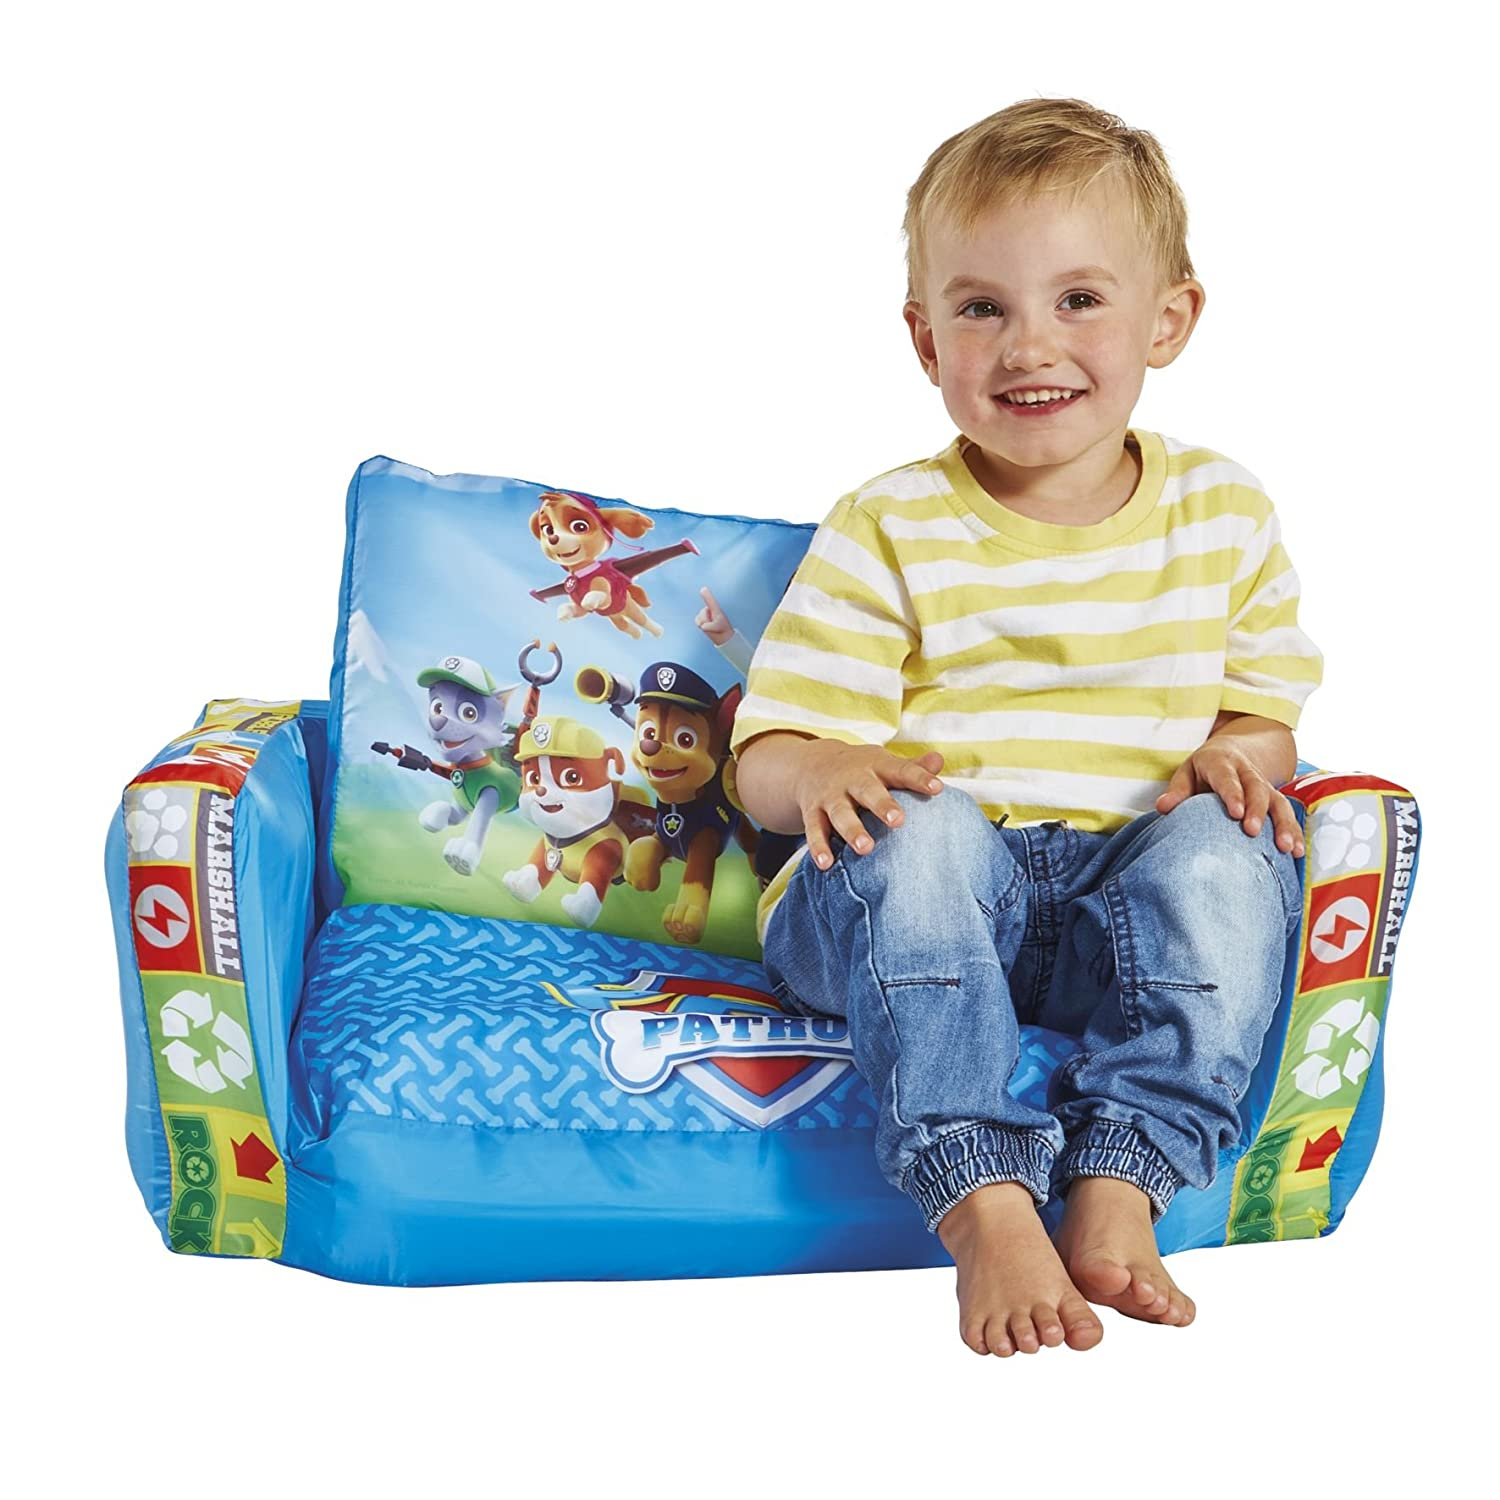 Paw Patrol 2 in 1 Inflatable Flip Out Mini Sofa and Lounger: Paw ...